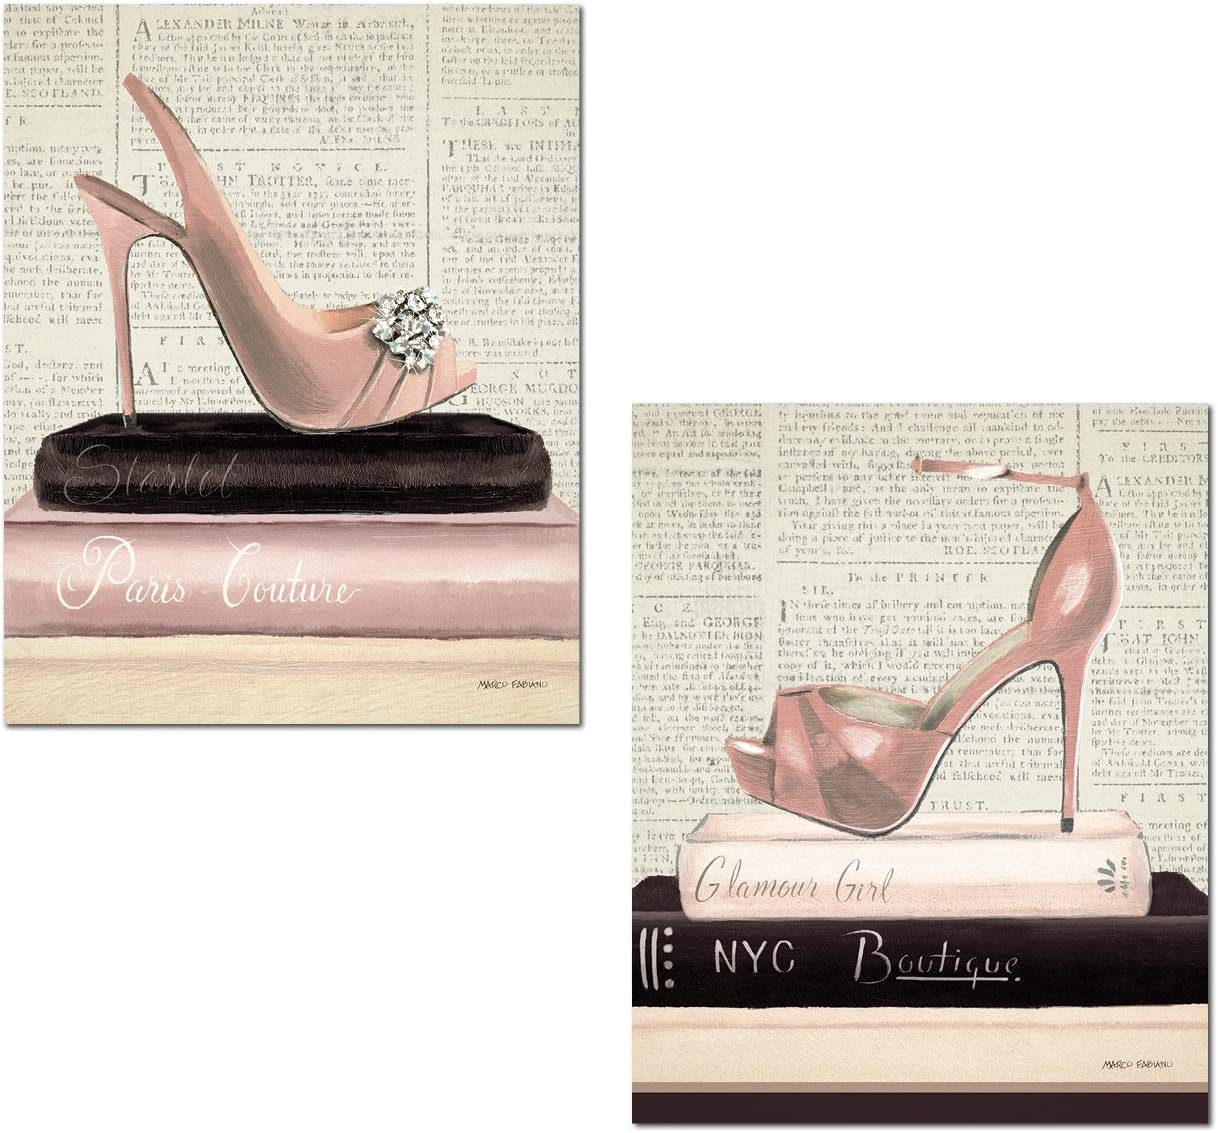 Trendy Pink High-Heels Atop Couture and Boutique Books by Marco Fabiano; Two 11x14in Poster Prints